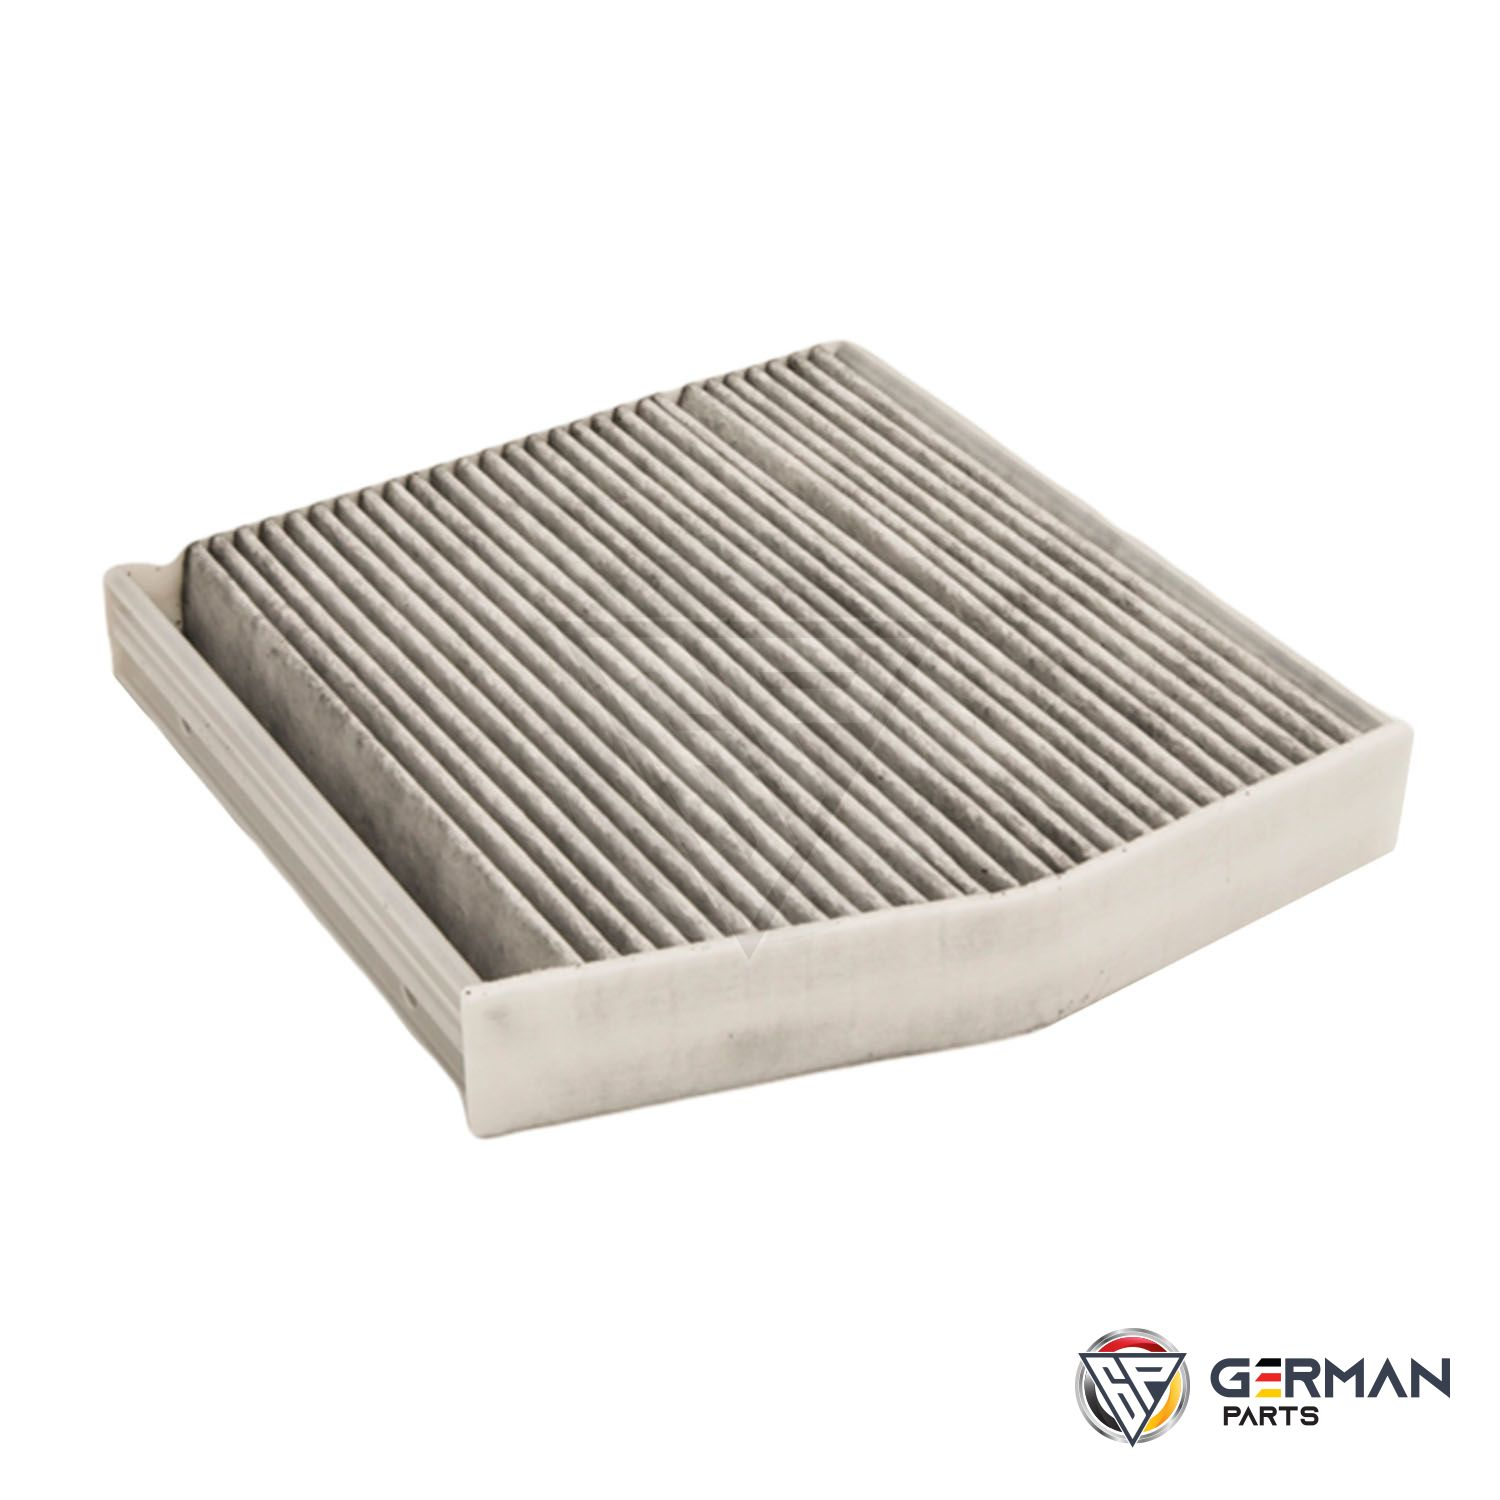 Buy Genuine Mercedes Benz Ac Dust Filter 2468300018 - German Parts